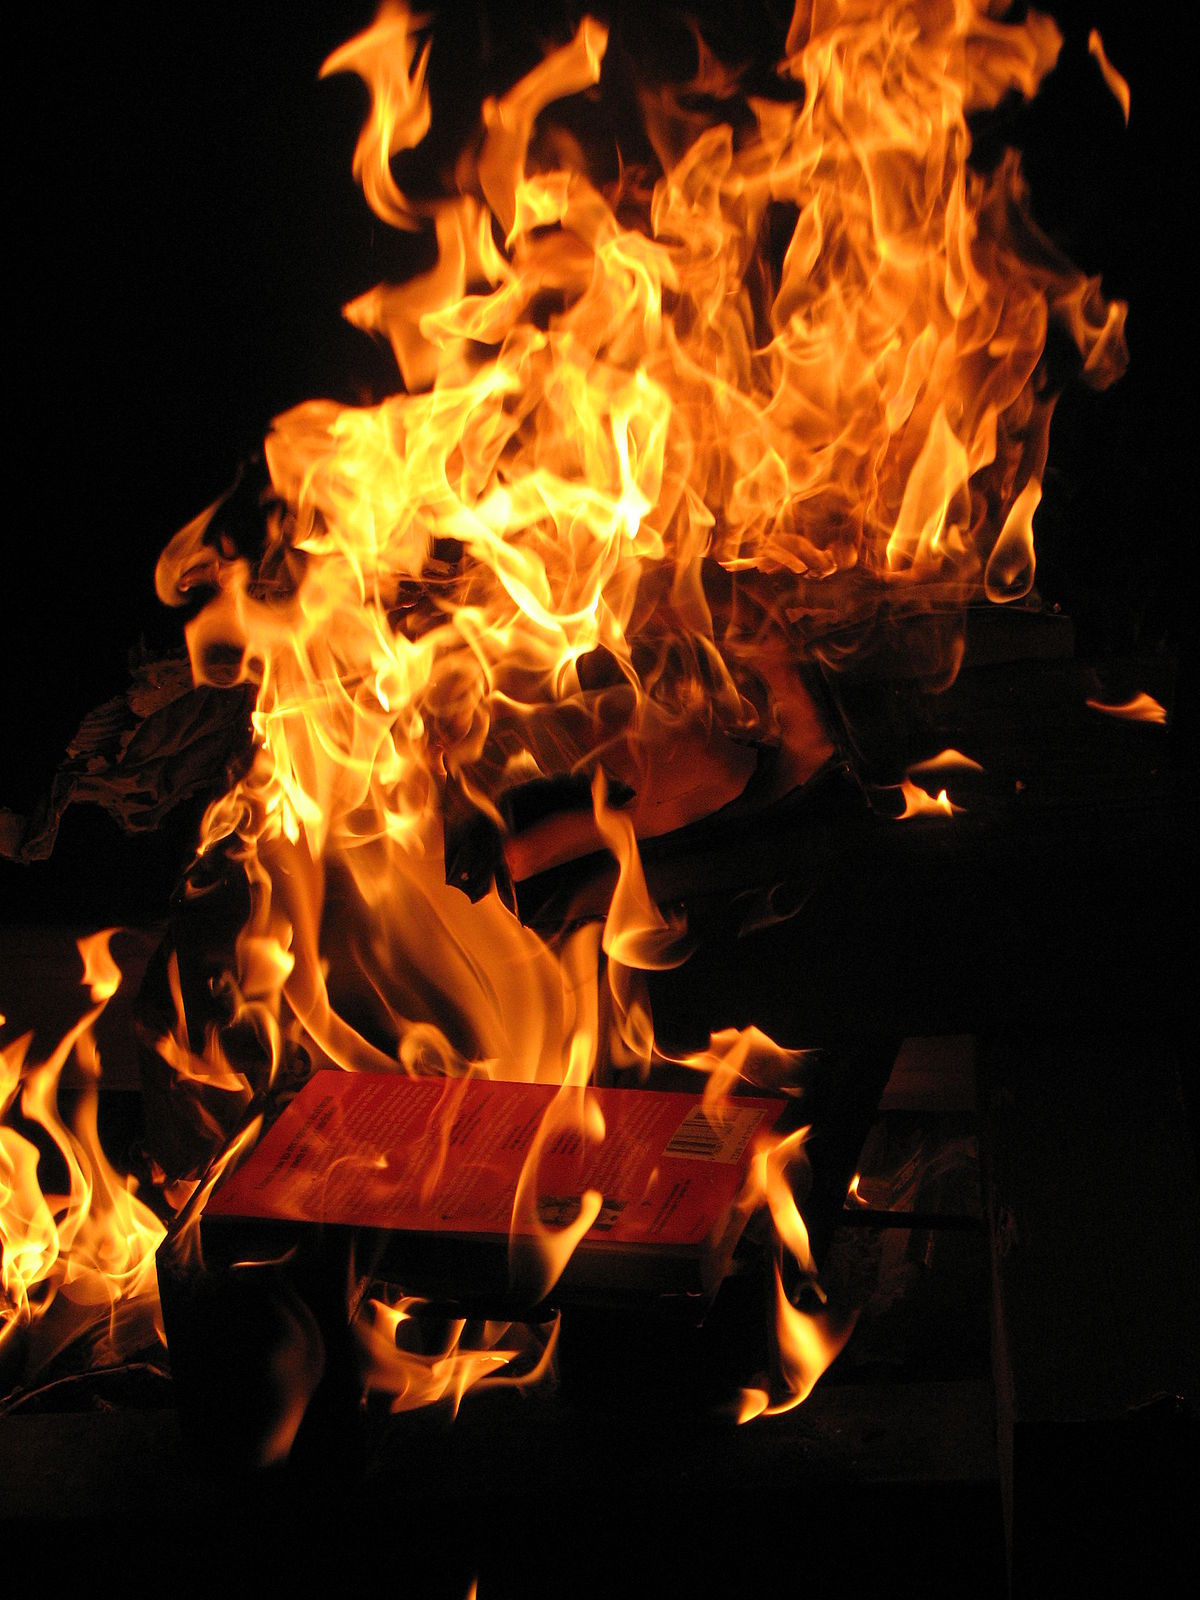 farenheit 451 paper Fahrenheit 451 is the temperature at which book paper burns fahrenheit 451 is a short novel set in the (perhaps near) future when firemen burn books forbidden by the totalitarian brave new world regime.